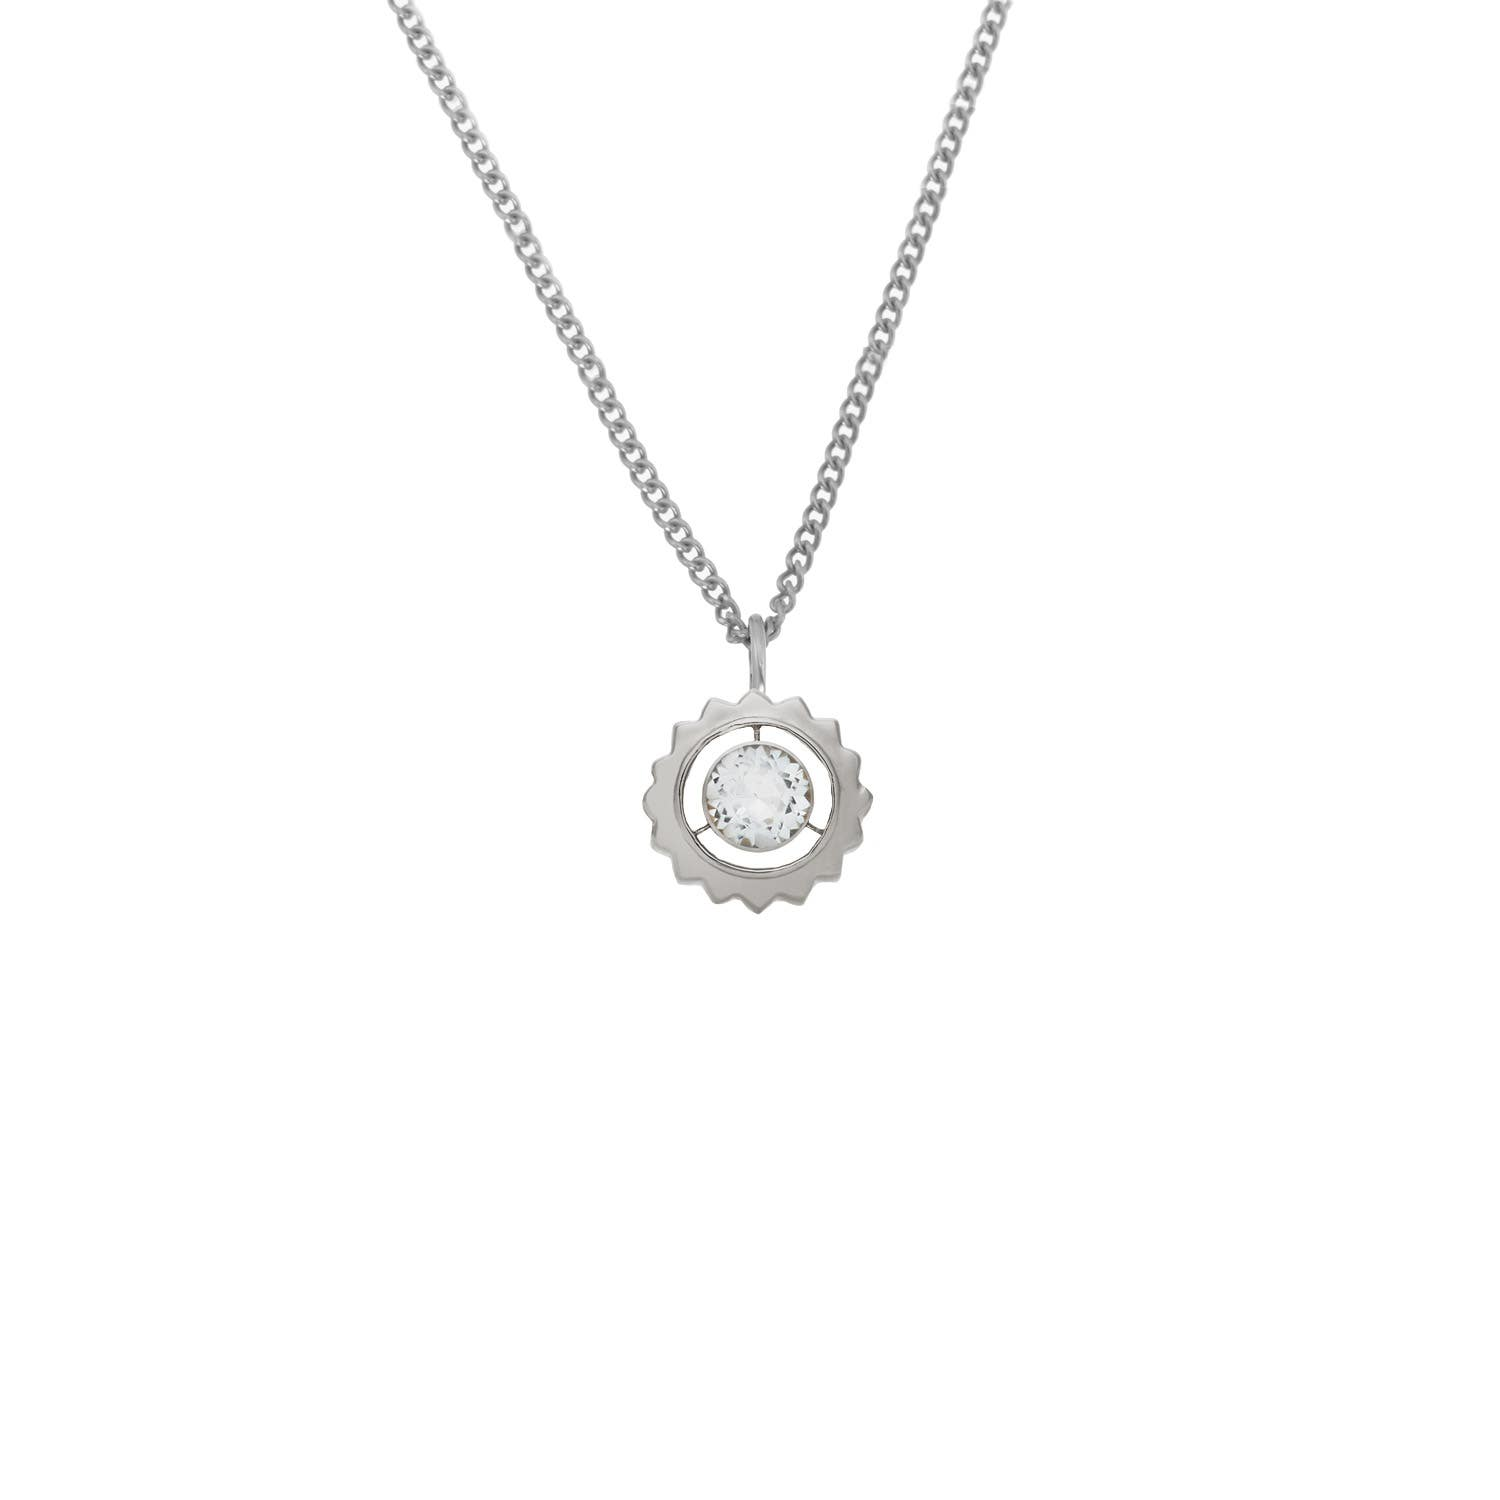 Buy throat chakra necklace sterling silver zoe morgan aloadofball Gallery